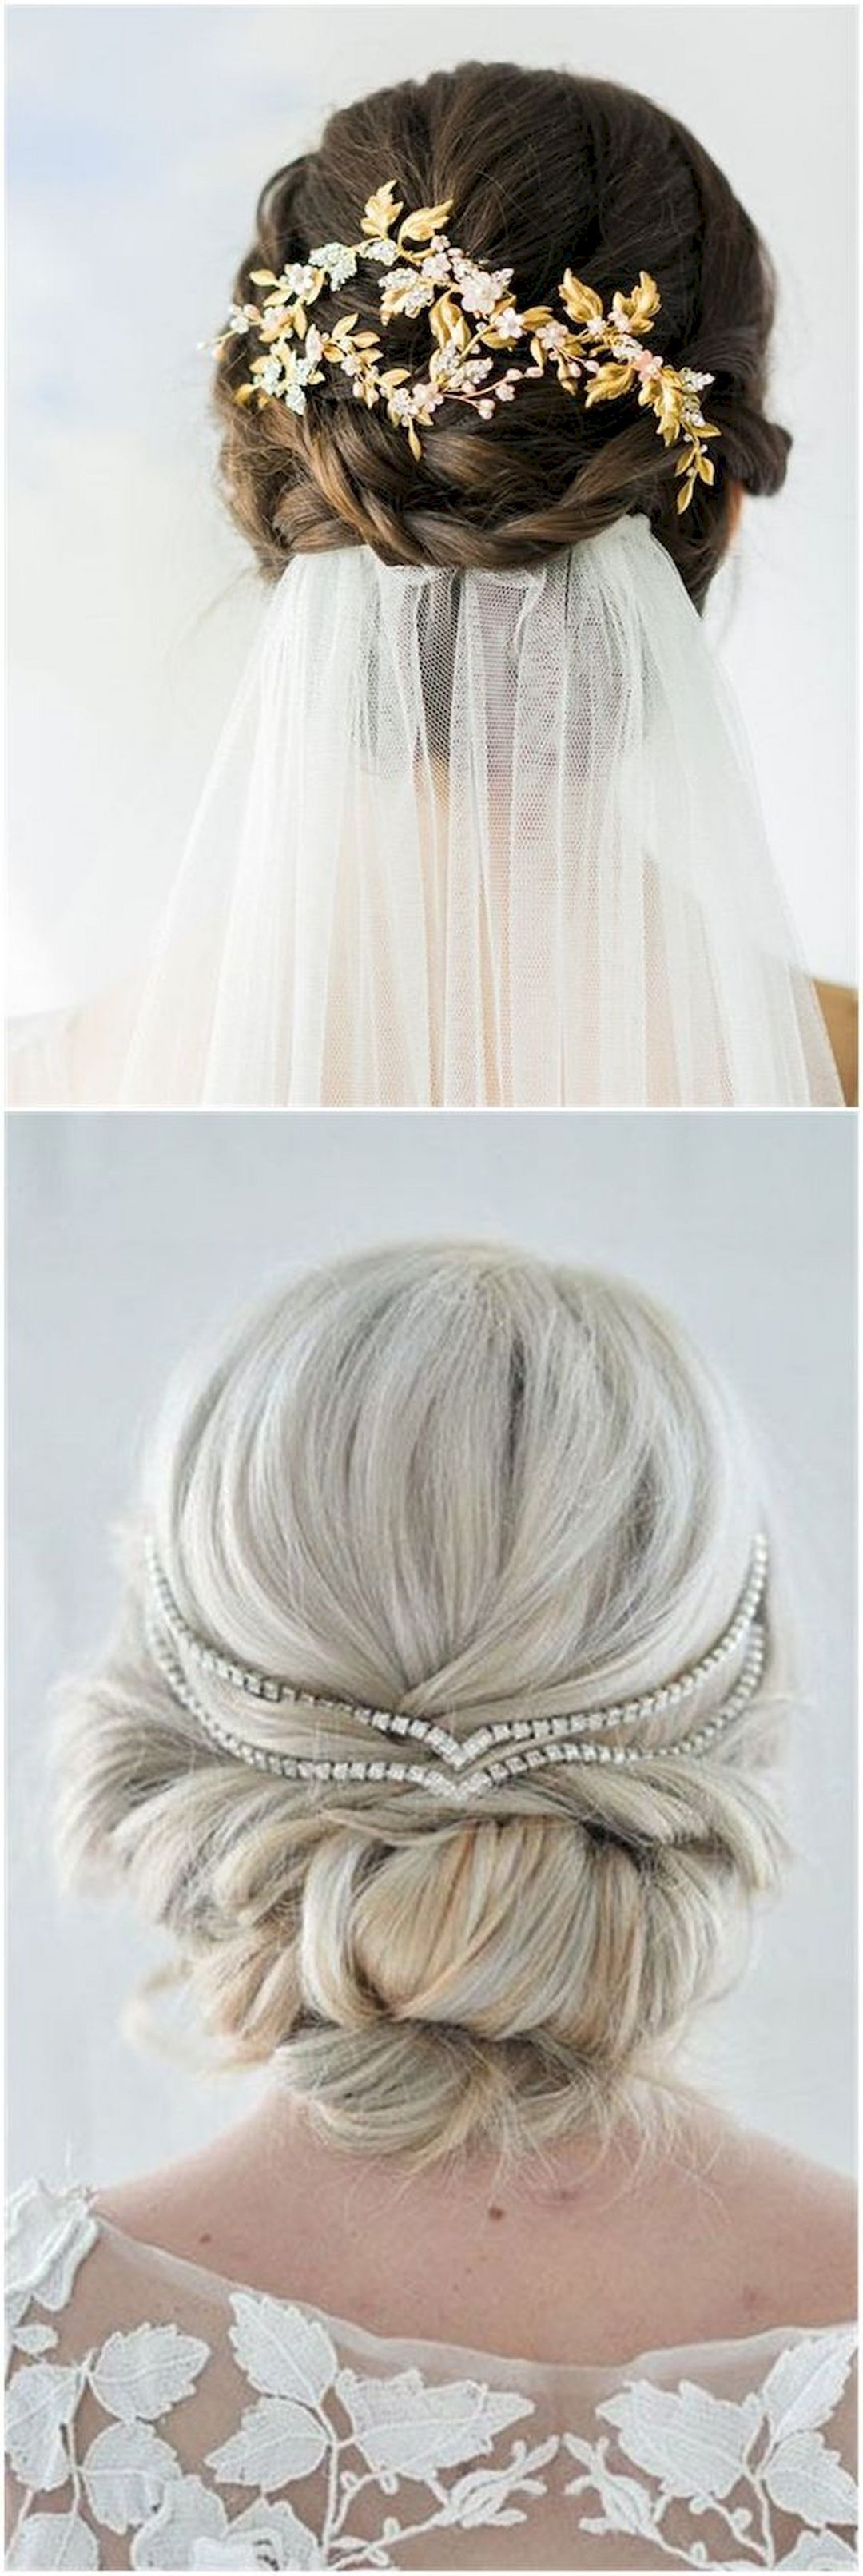 Most Popular Wedding Hairstyle That Will Make The Bridal More ...